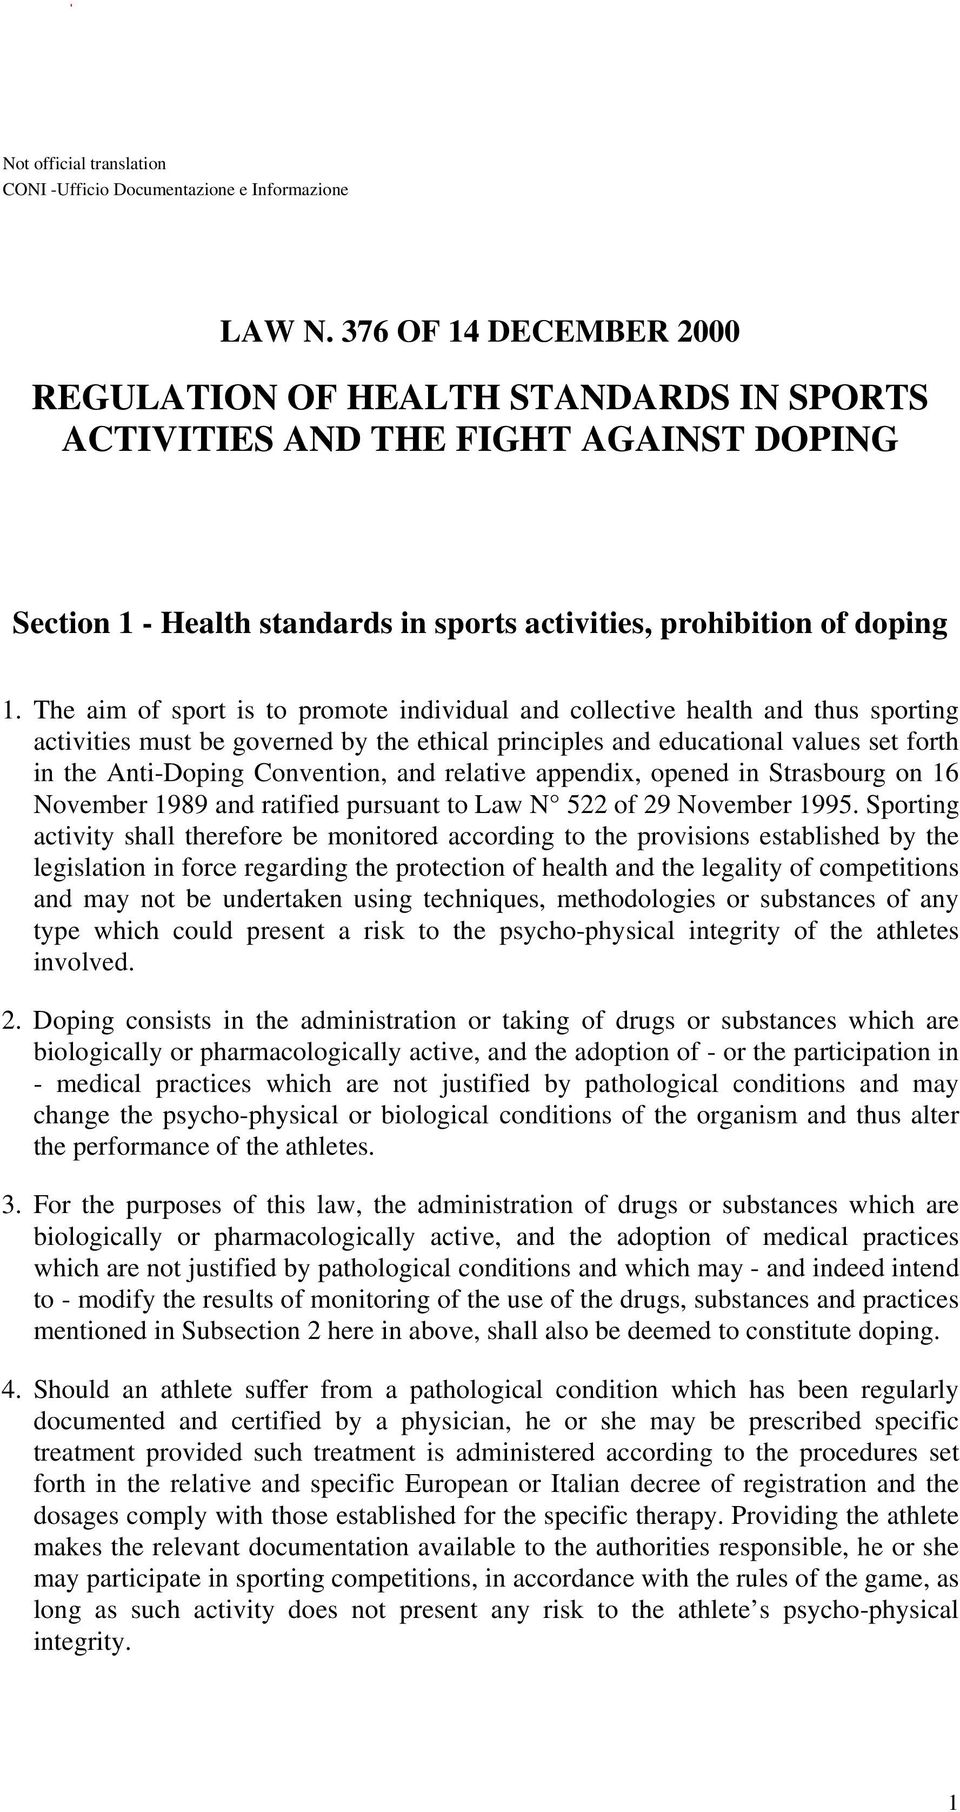 The aim of sport is to promote individual and collective health and thus sporting activities must be governed by the ethical principles and educational values set forth in the Anti-Doping Convention,